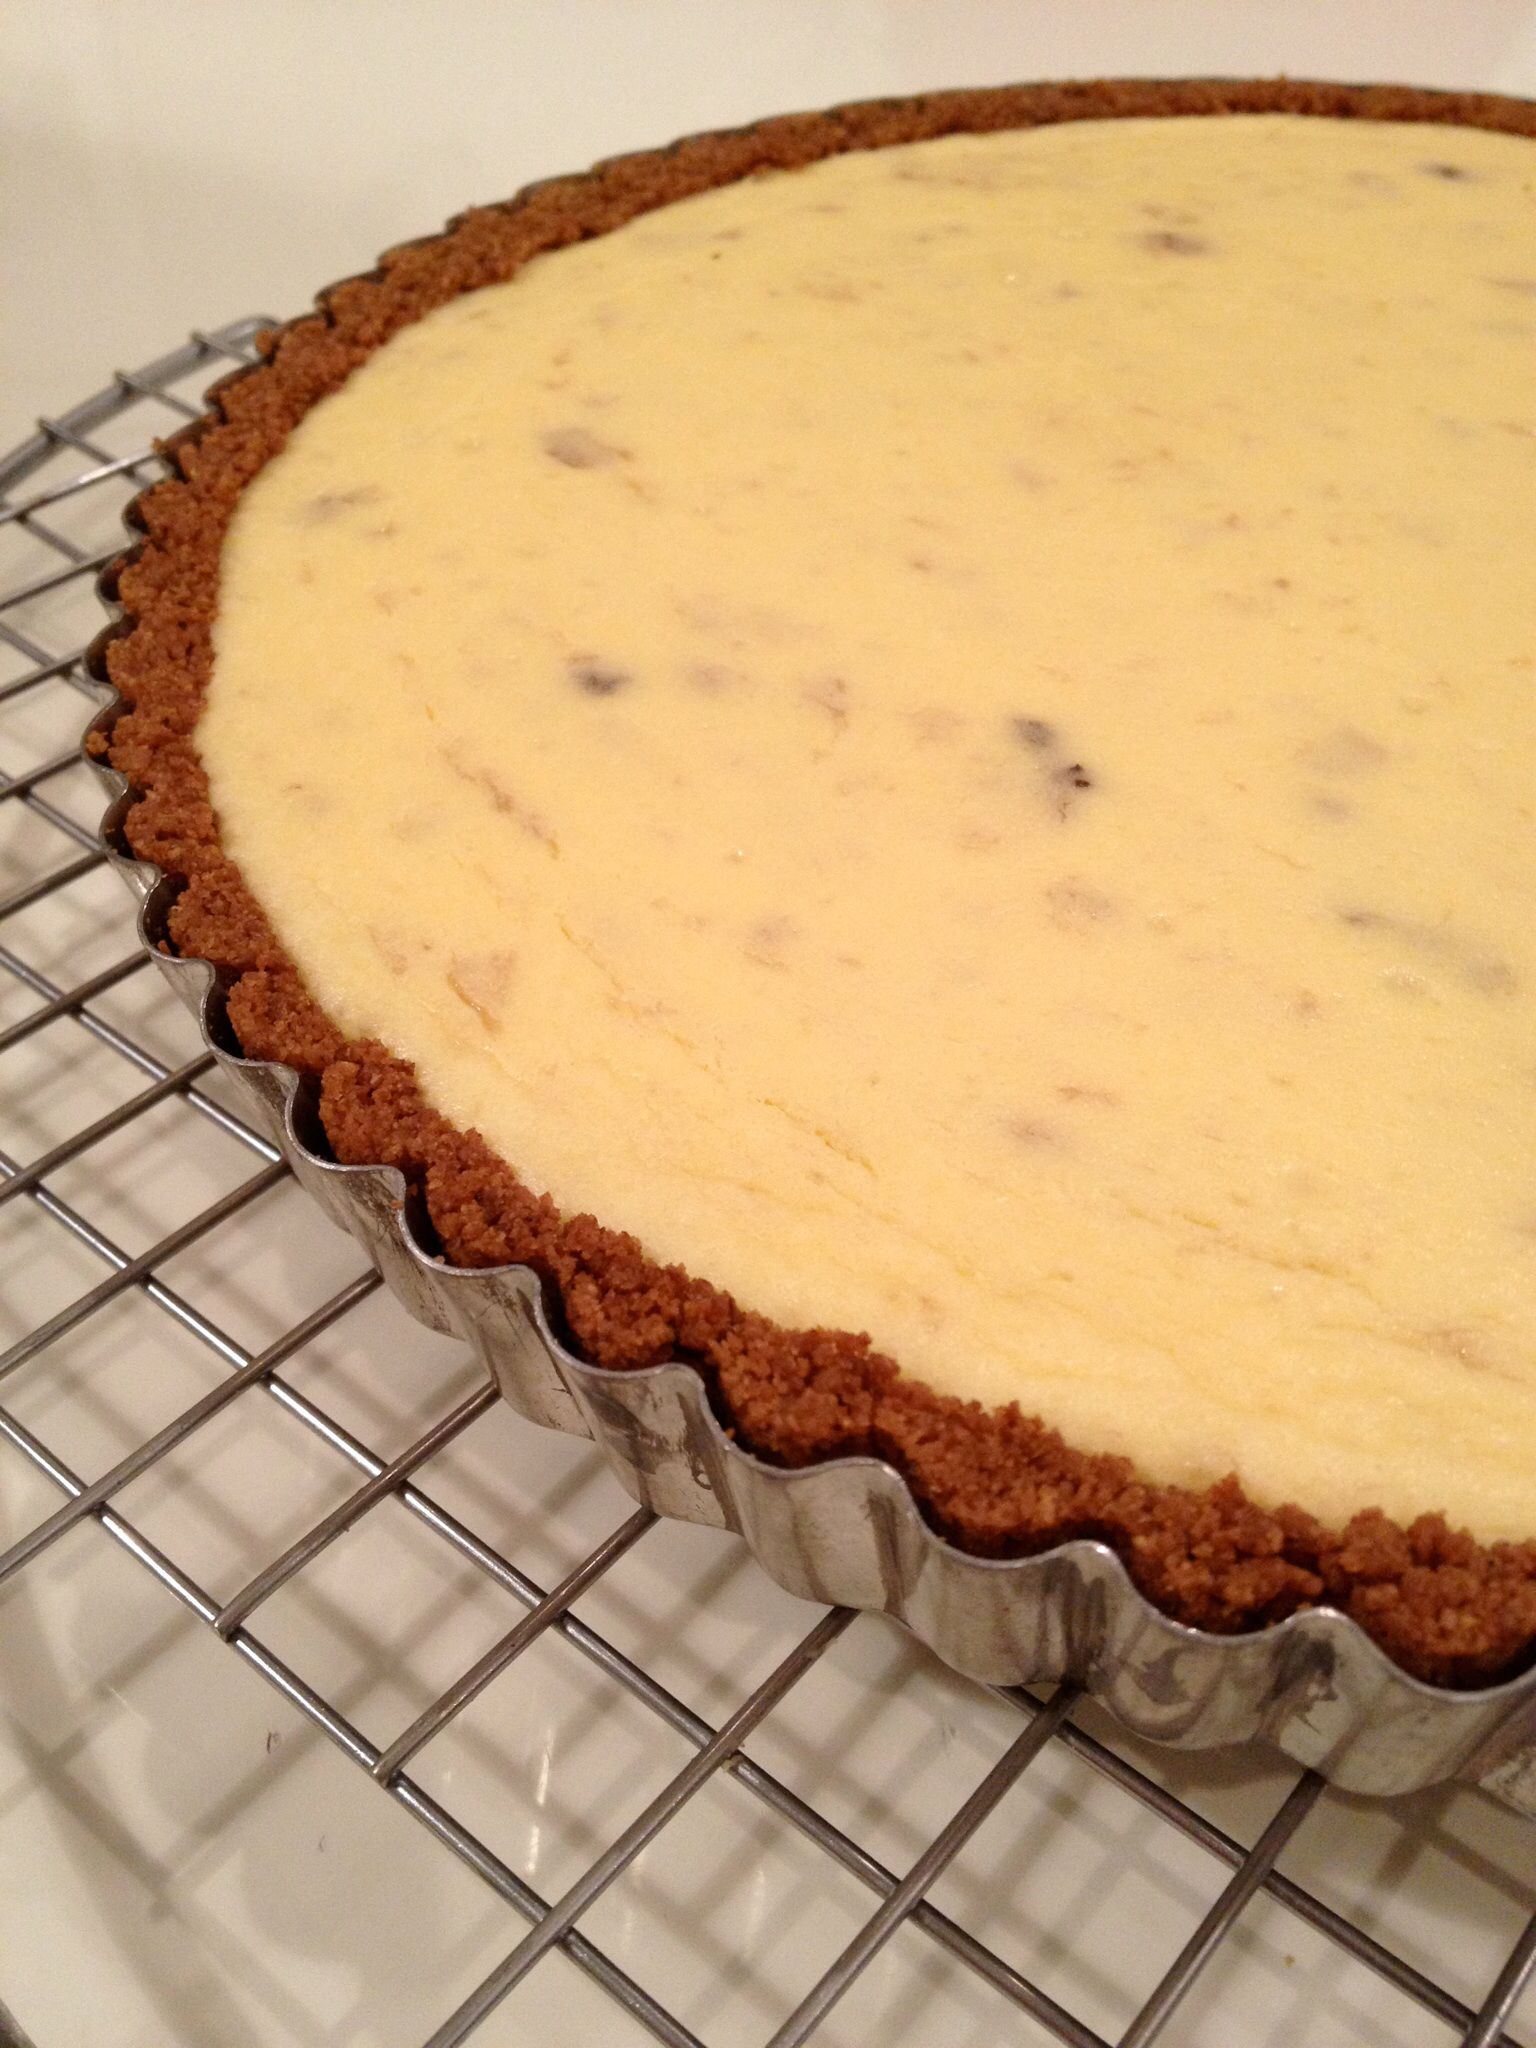 Cheryl's New York banana cream cheese cake